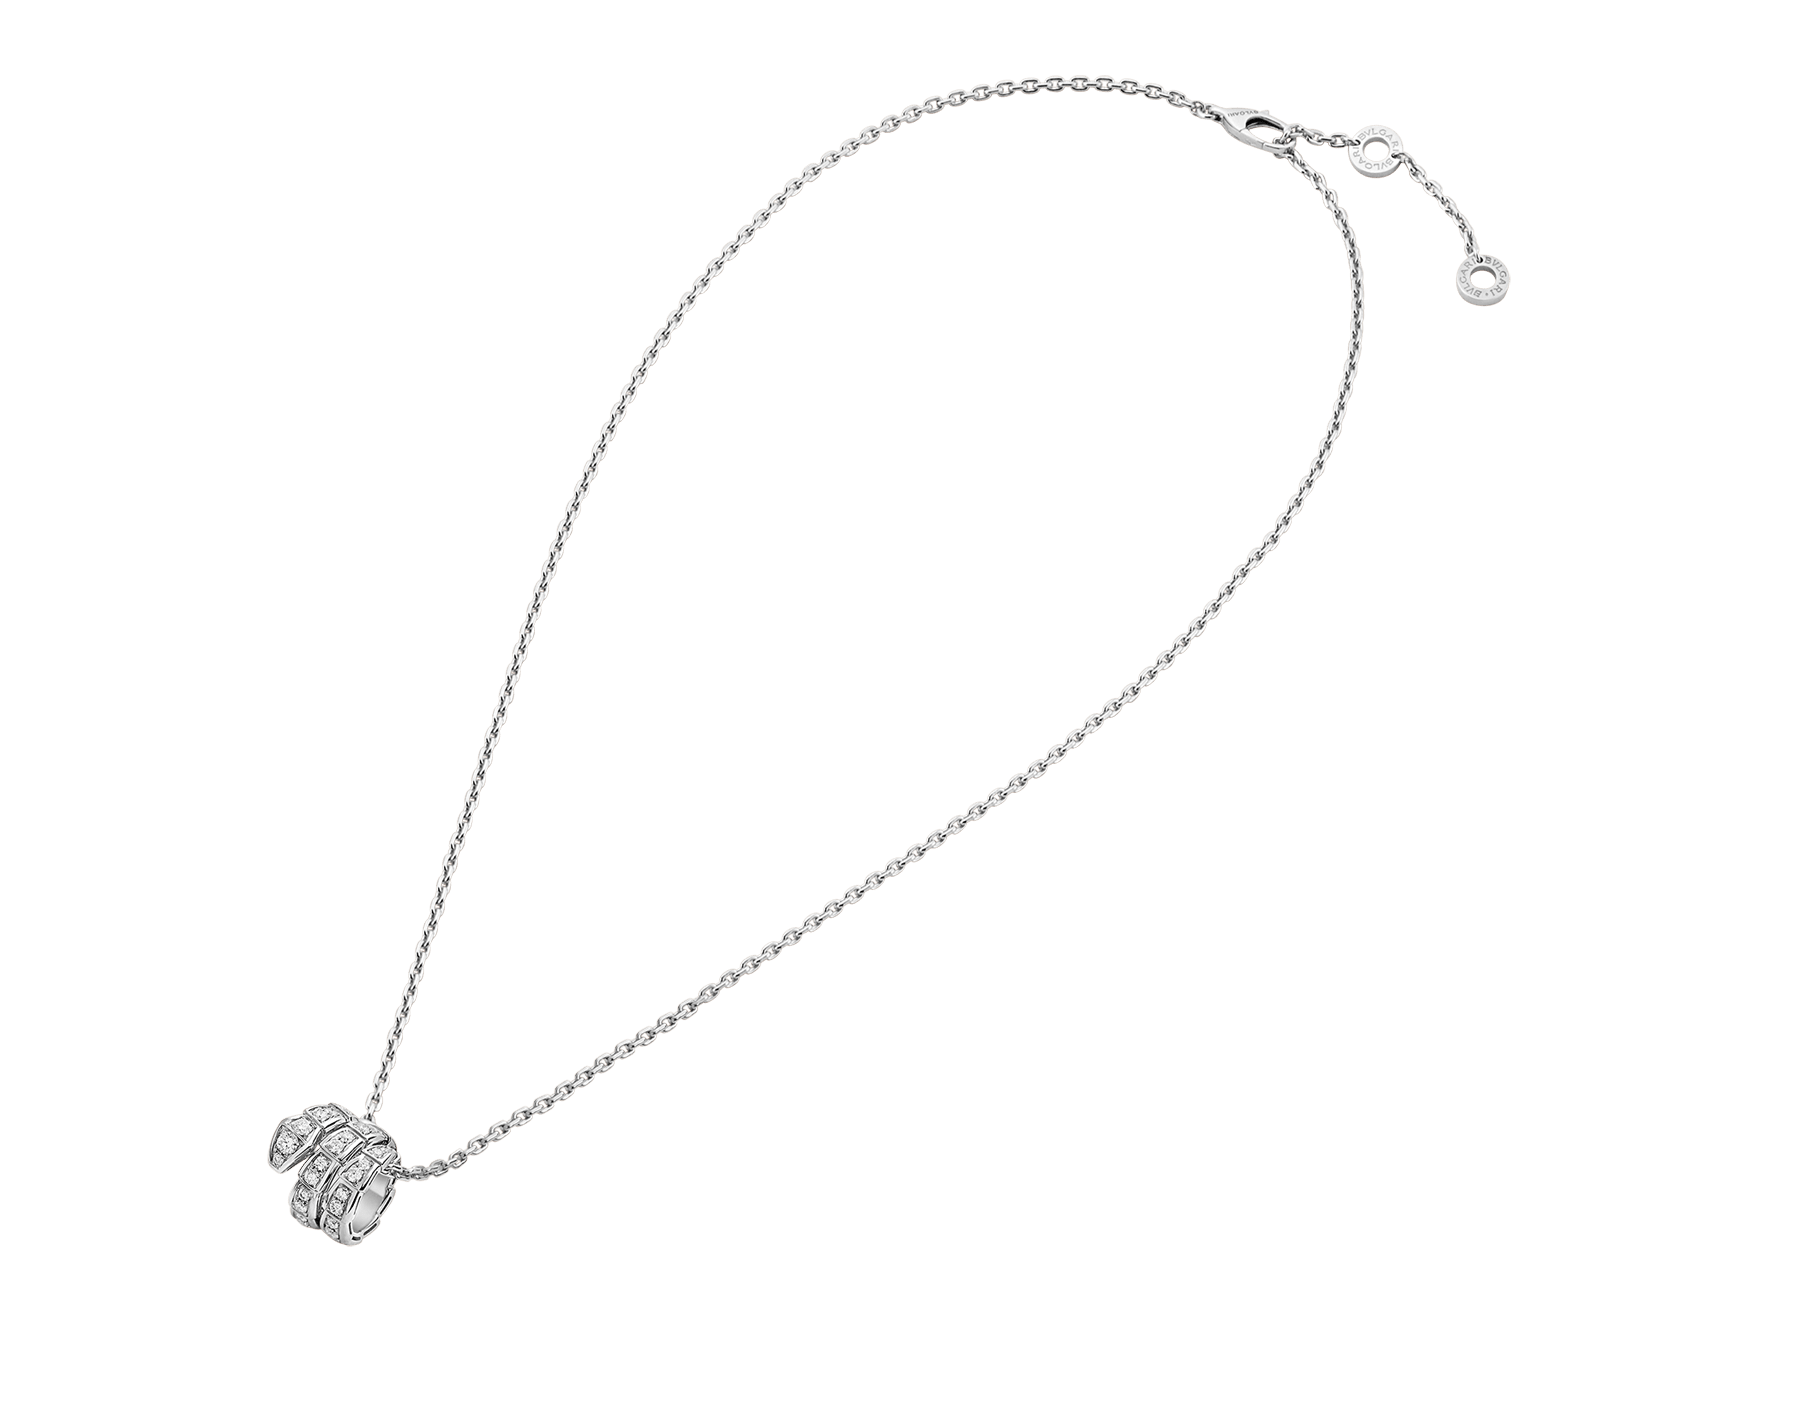 Serpenti Viper pendant necklace in 18 kt white gold set with pavé diamonds 357796 image 2